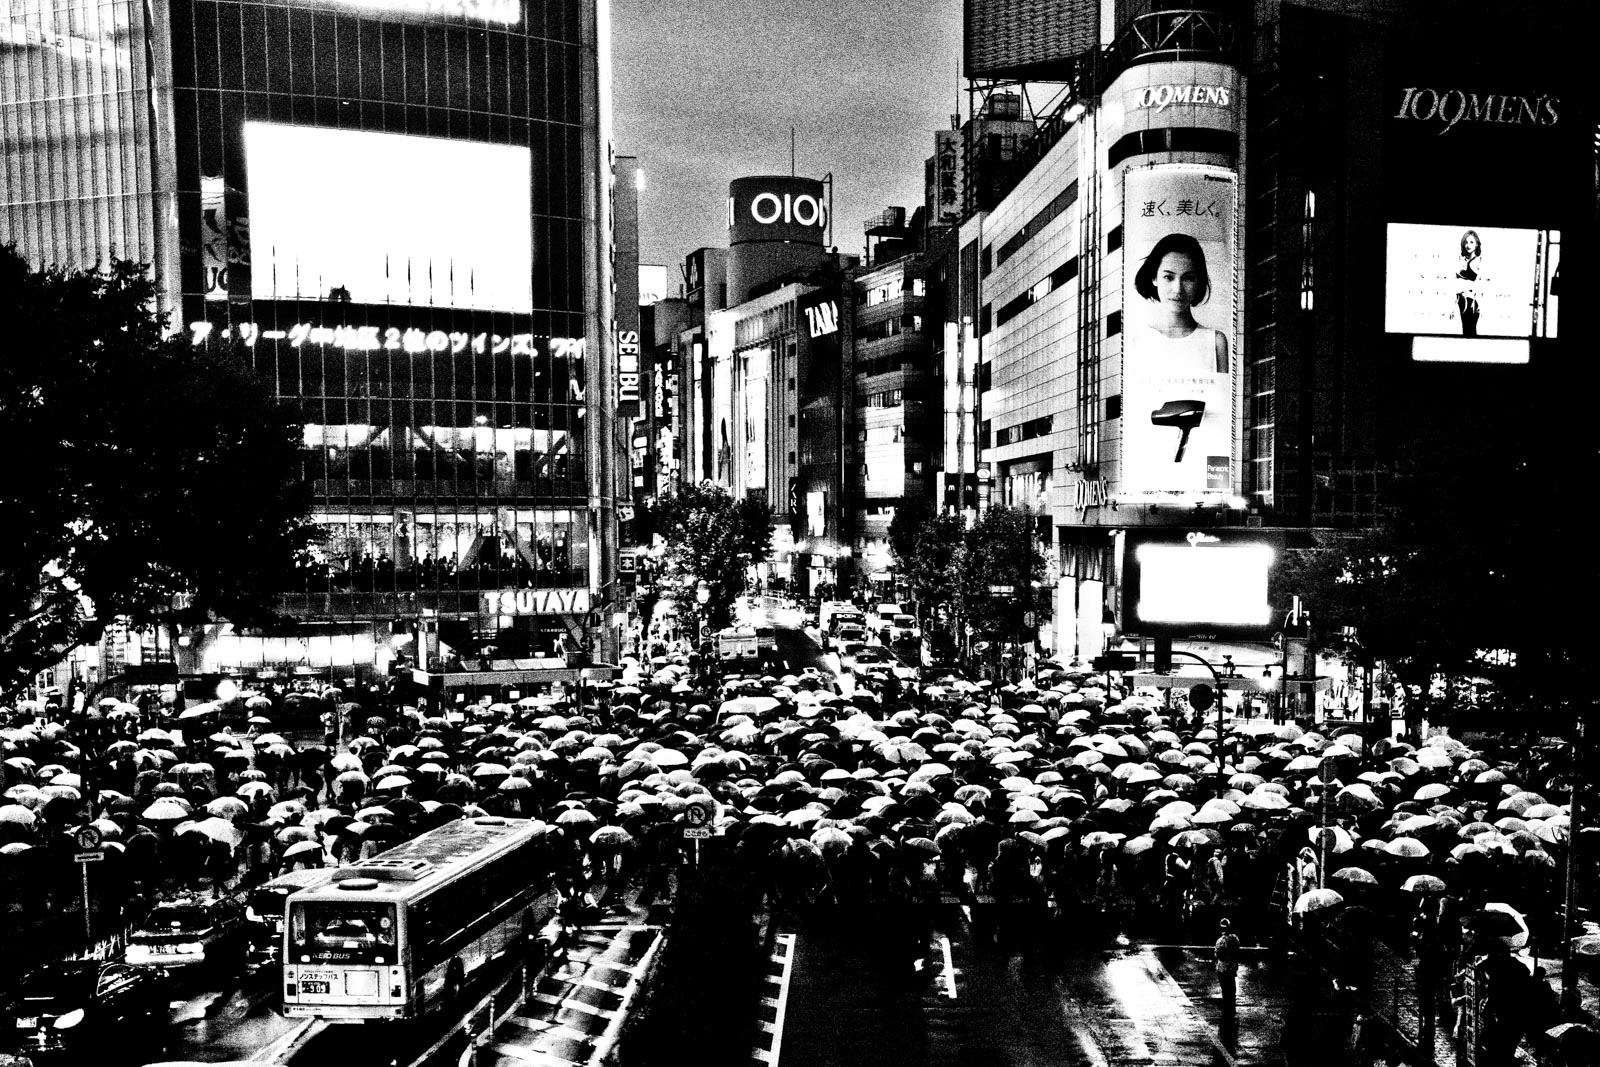 Overview of a rainy Shibuya with lots of umbrellas. Street Photography by Victor Borst